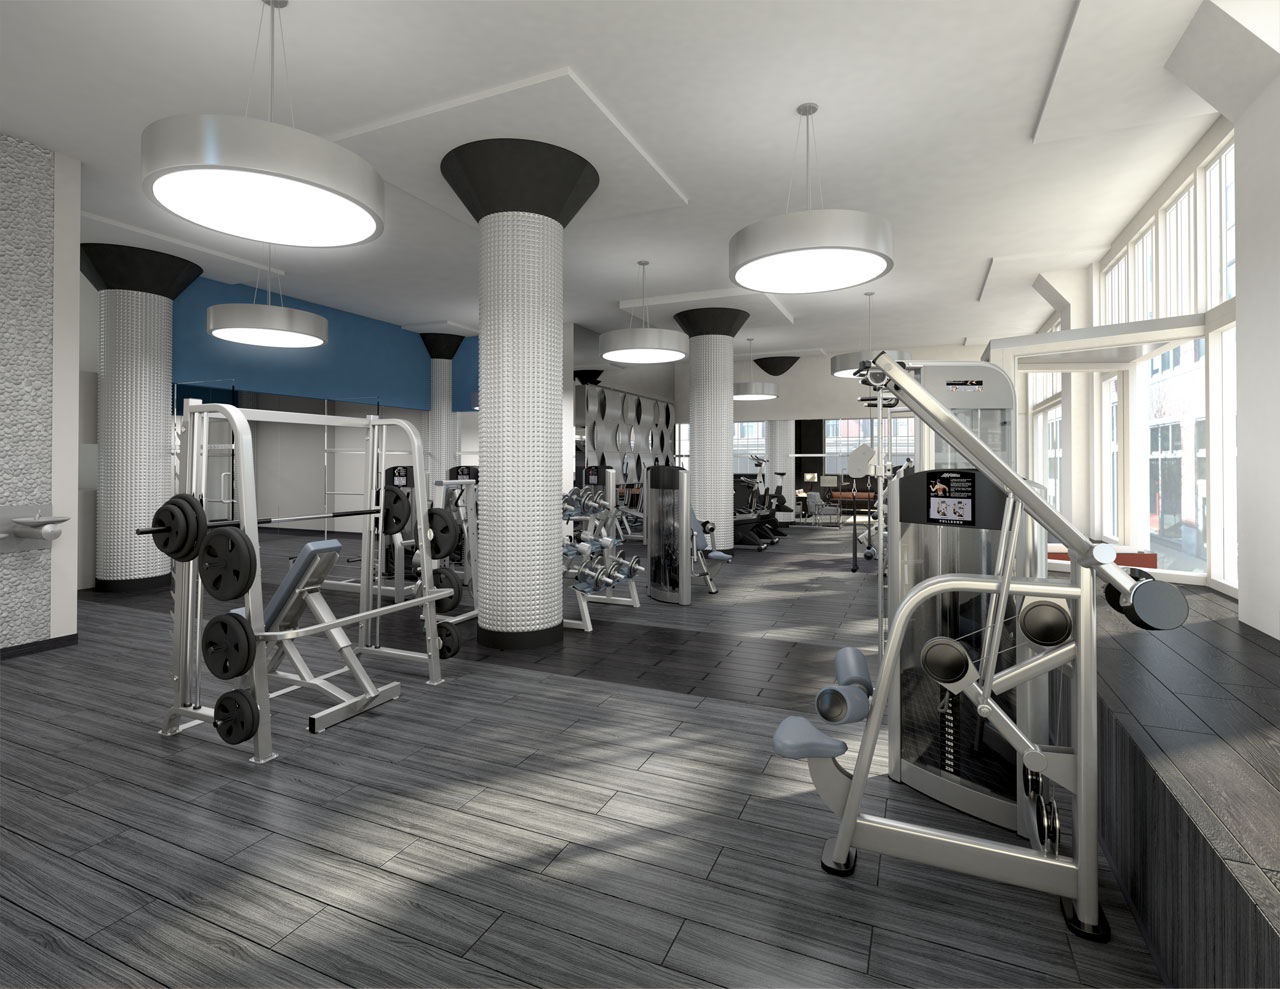 Fitness Center visualization for a multi-story condominium building with sunlight streaming in from windows on the right.